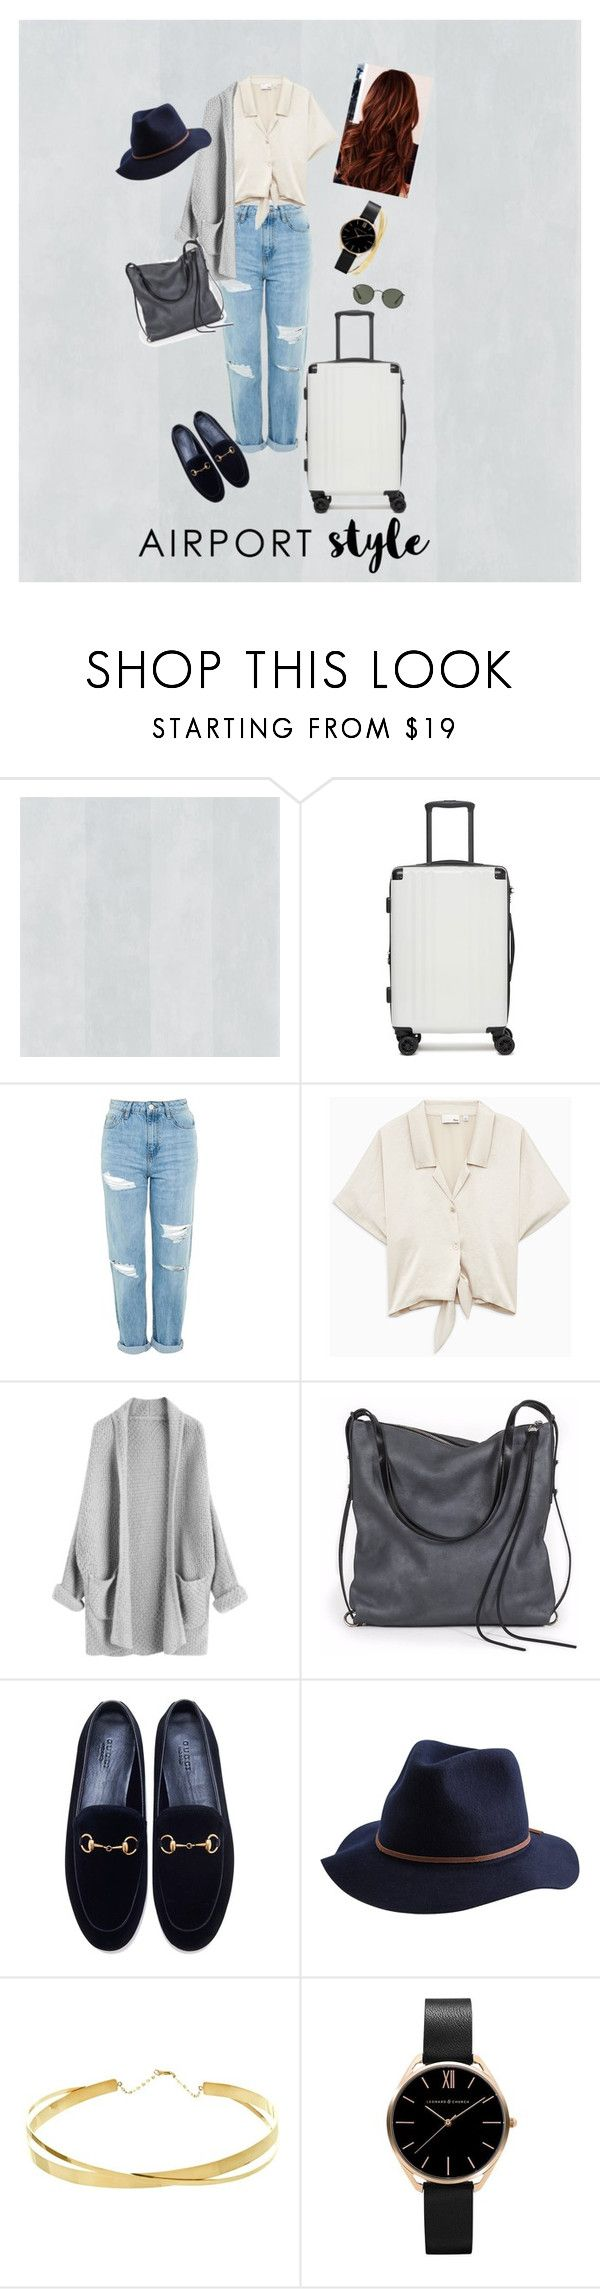 """""""Jetsetter Trends"""" by georgiagk ❤ liked on Polyvore featuring CalPak, Topshop, Ina Kent, Gucci, Brixton, Lana Jewelry, Ray-Ban, contestentry, airportstyle and polyPresents"""